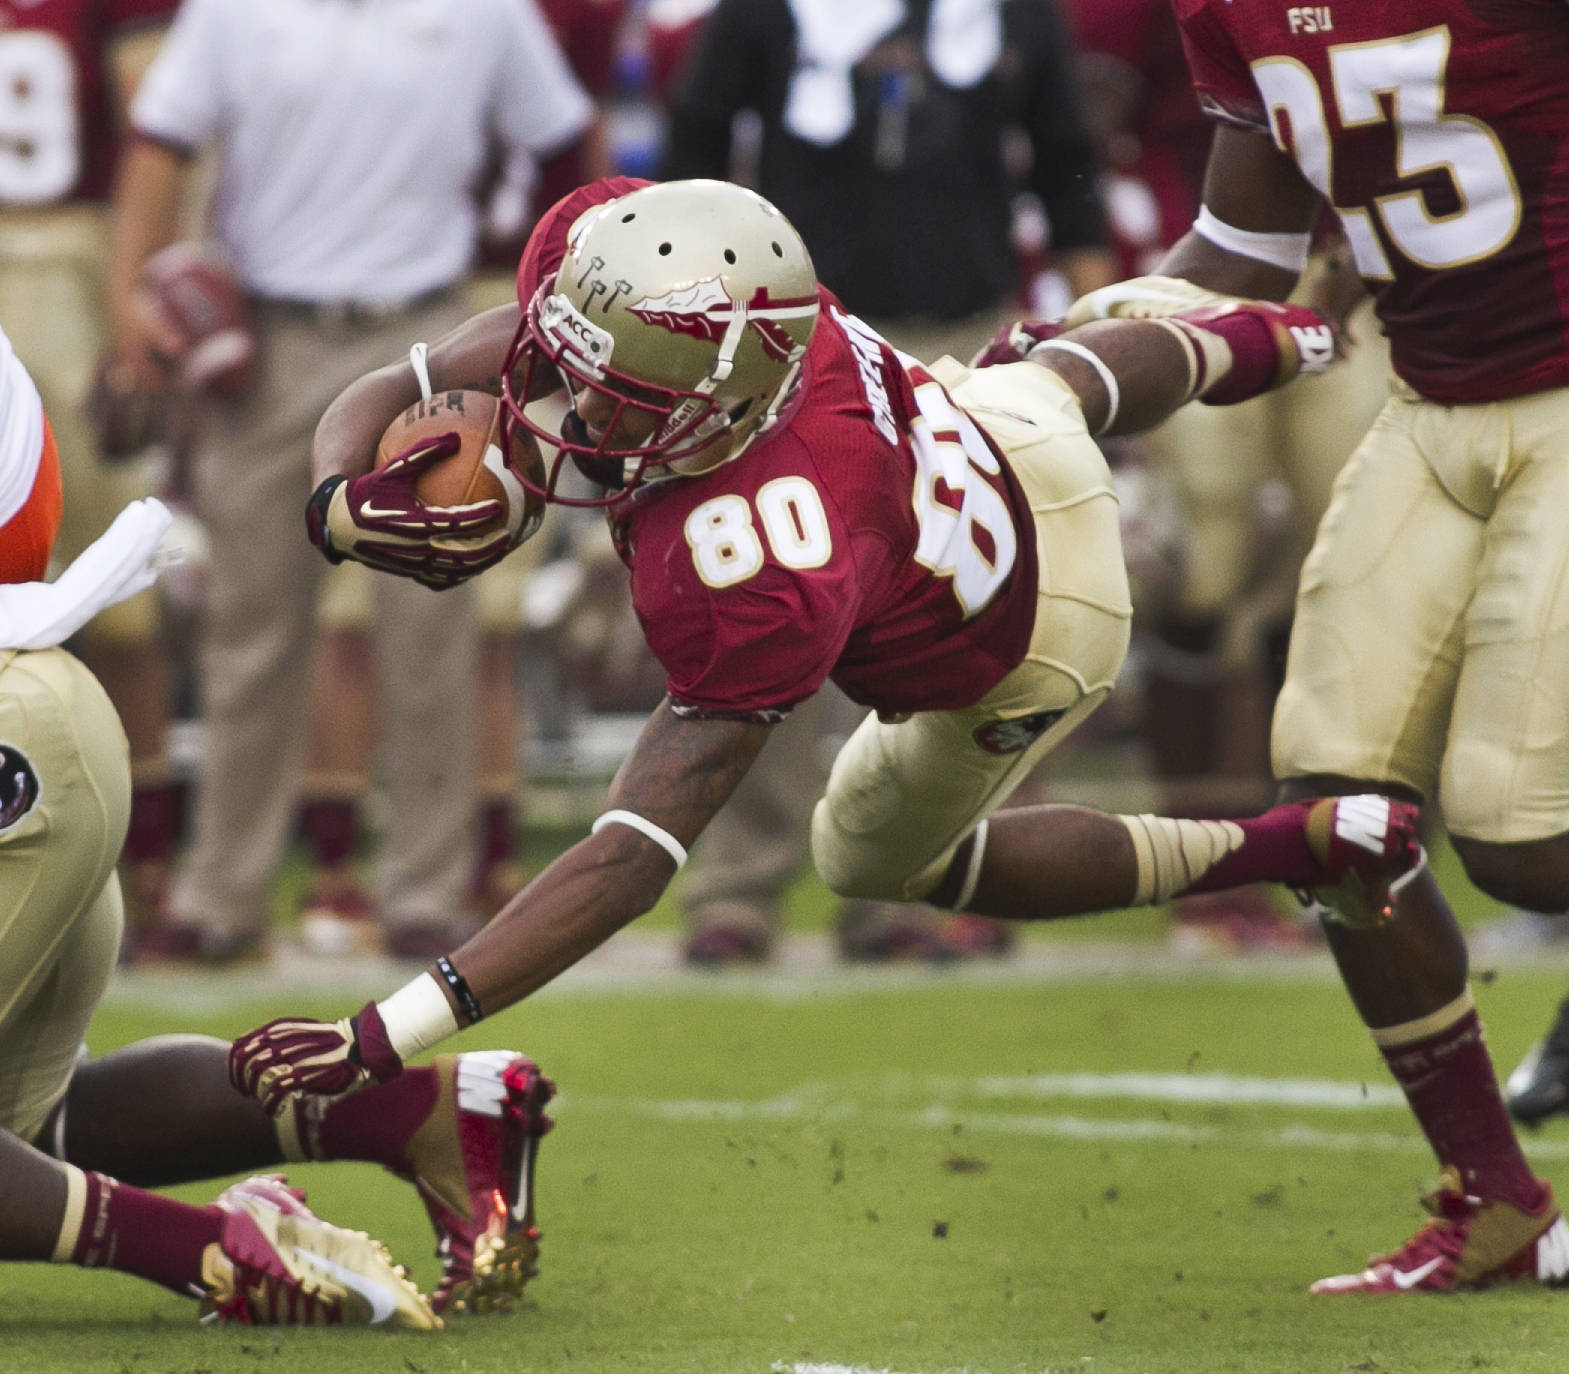 Rashad Greene (80),  FSU vs Savannah State, 9/8/12 (Photo by Steve Musco)